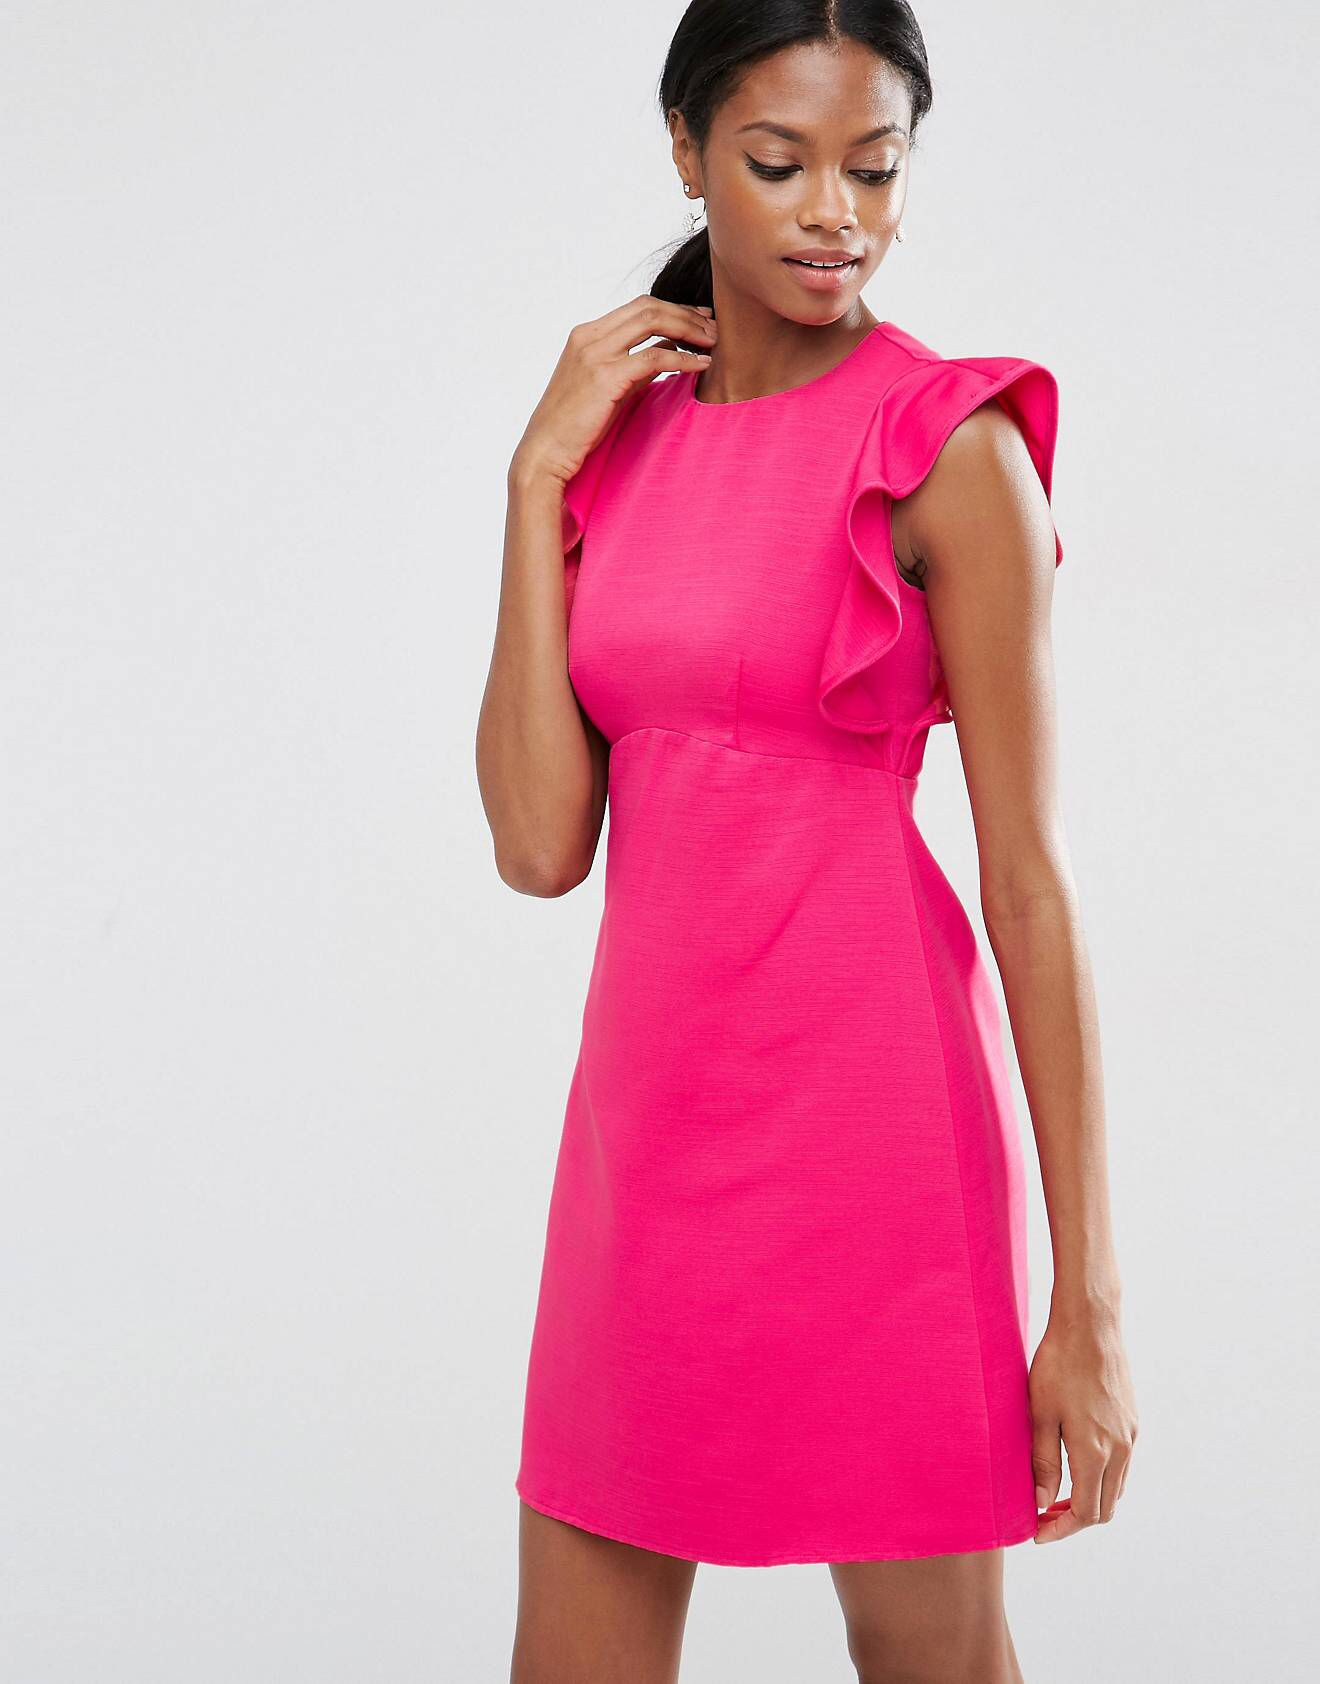 LOVE this from ASOS! | Wedding guest outfits | Pinterest